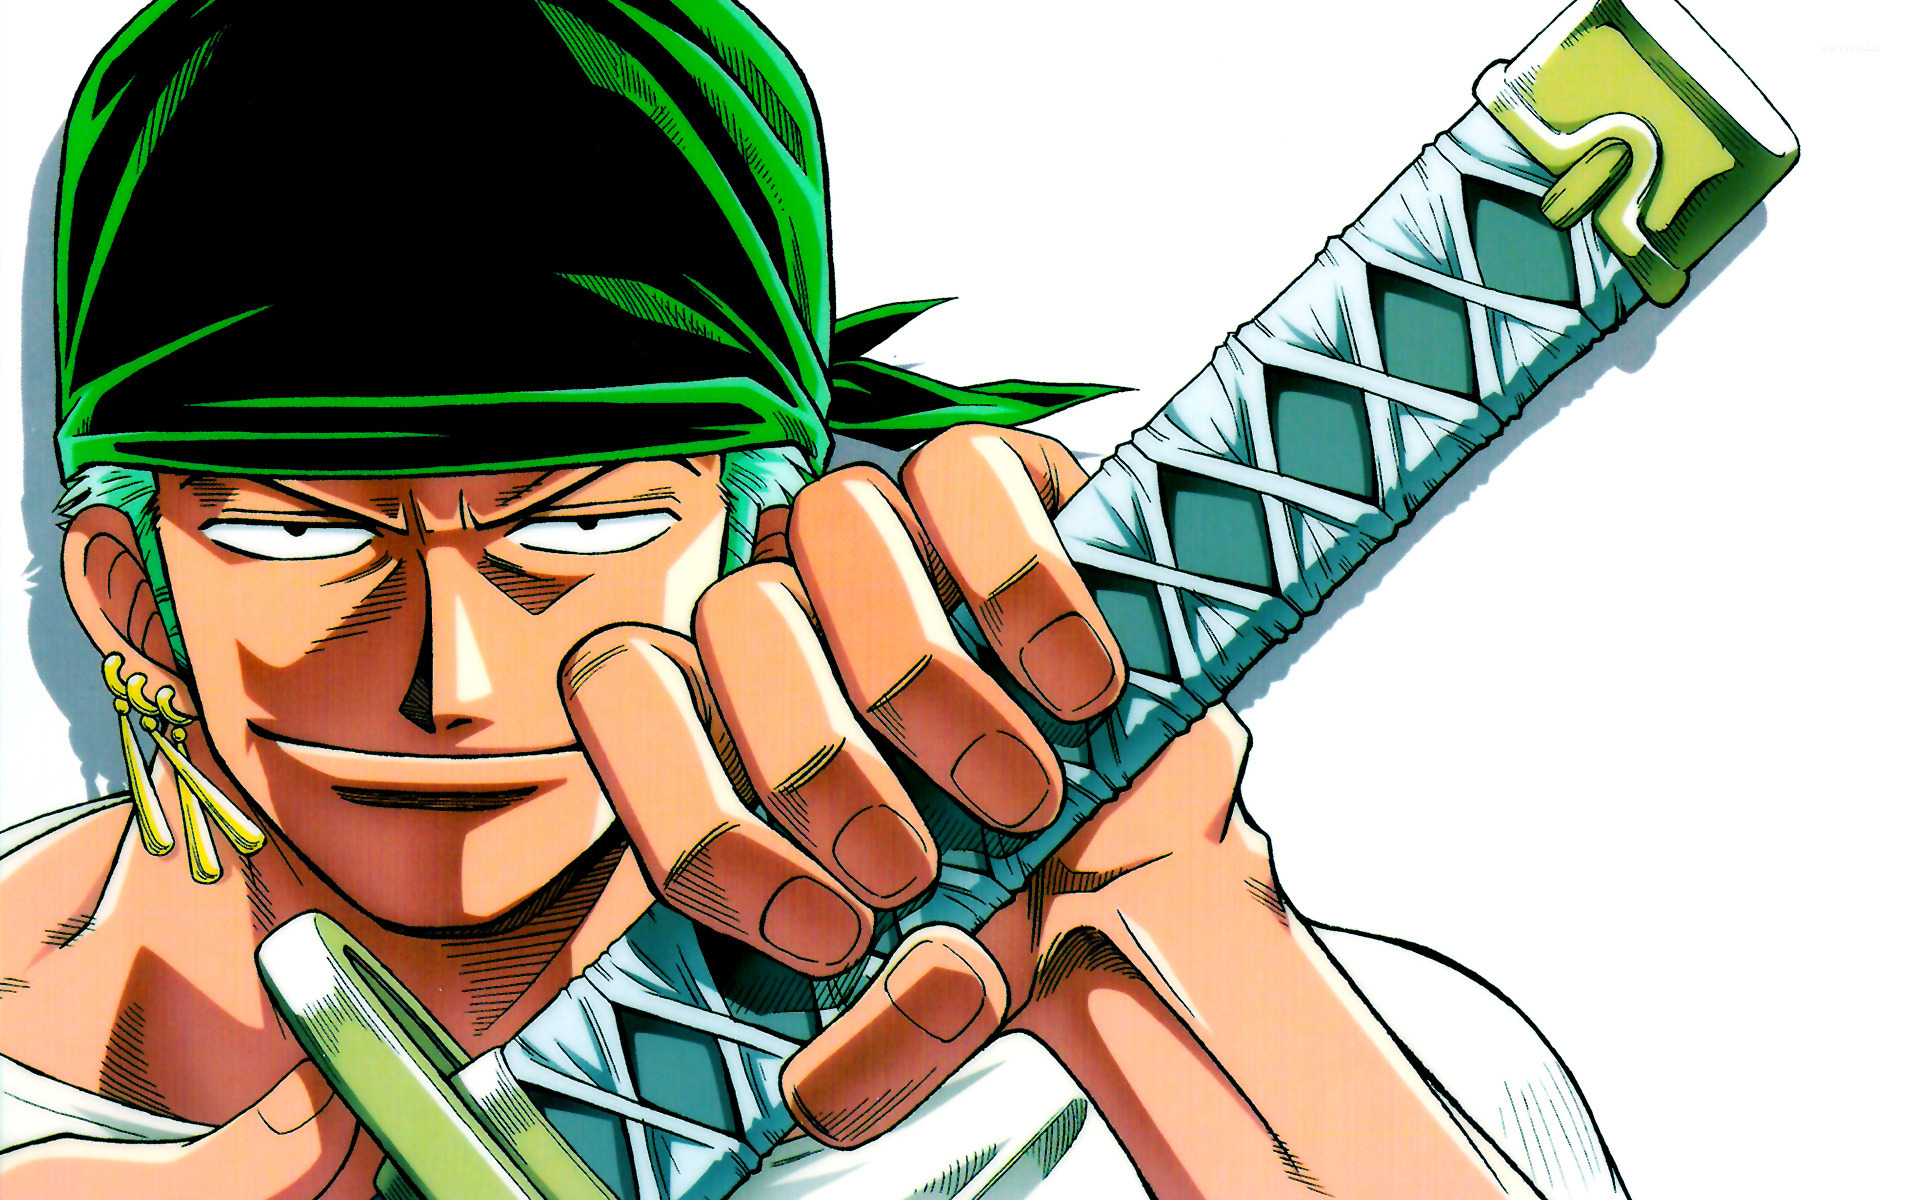 50 zoro one piece wallpaper on wallpapersafari - One piece logo zoro ...